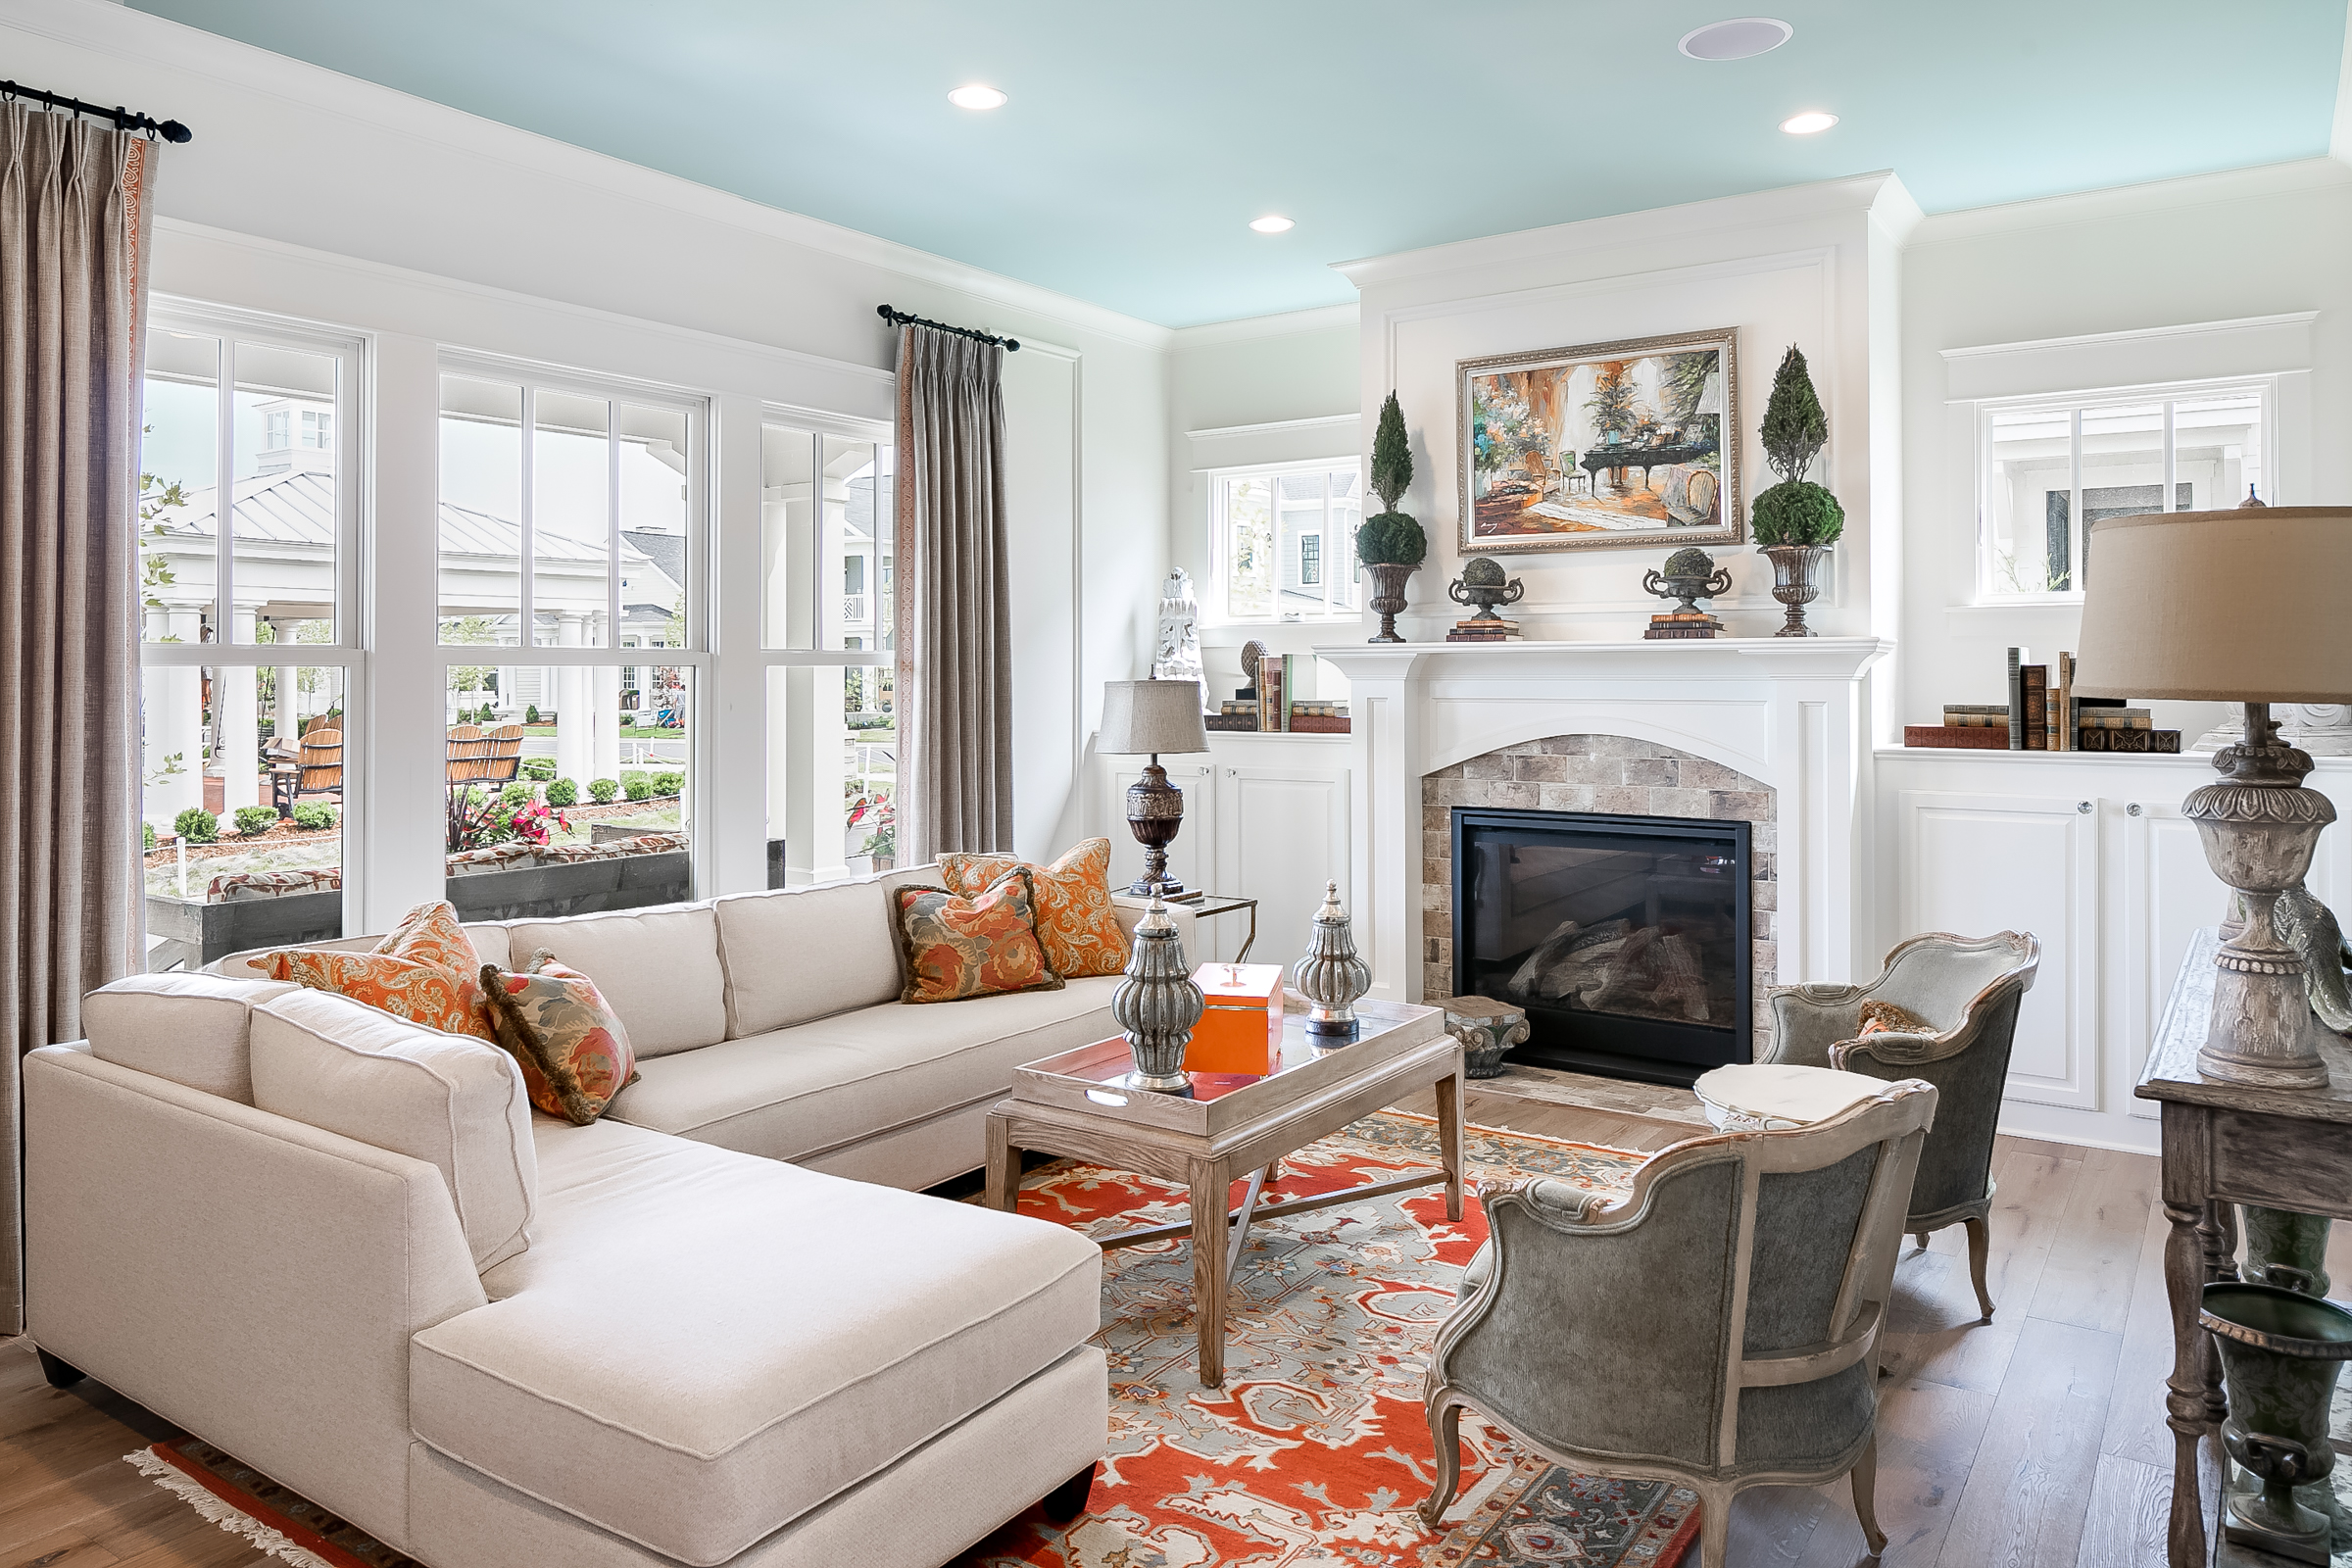 Tim Furlong Jr. _ Southern Inspirations _ Homearama 2016 (3 of 58).jpg